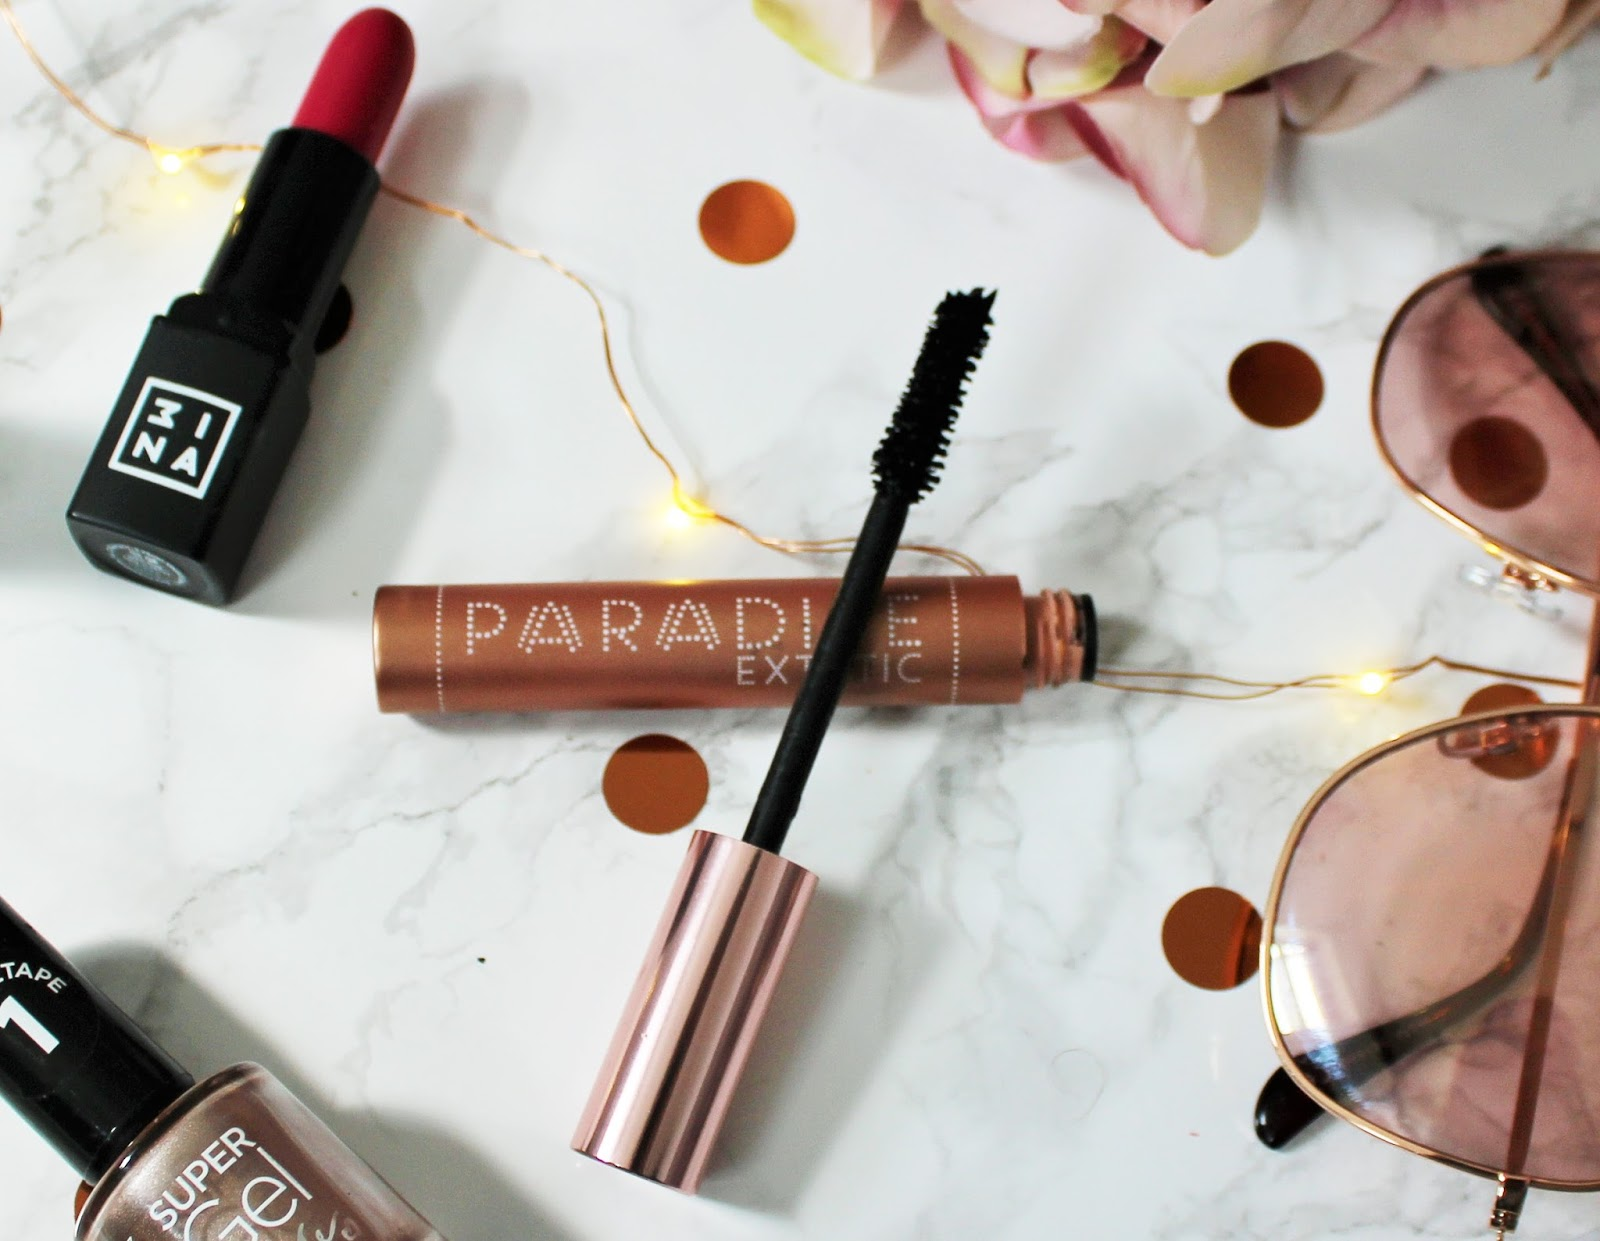 August Favourites 2017 featuring Rimmel, 3ina, H&M and L'Oreal - 7